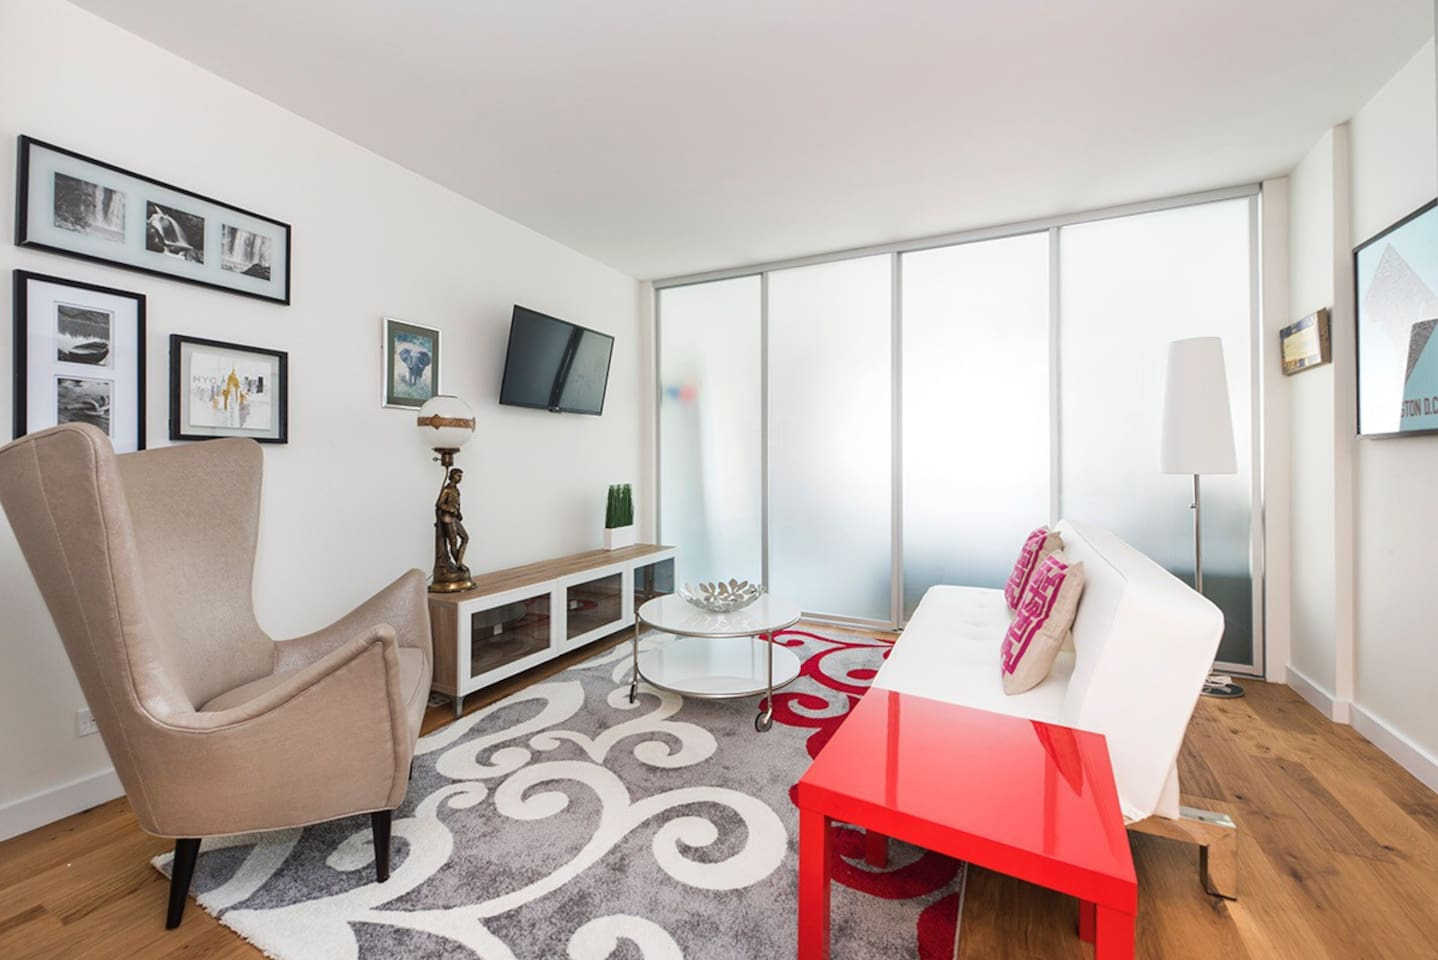 2bed 1bath doorman building near grand central apartments for